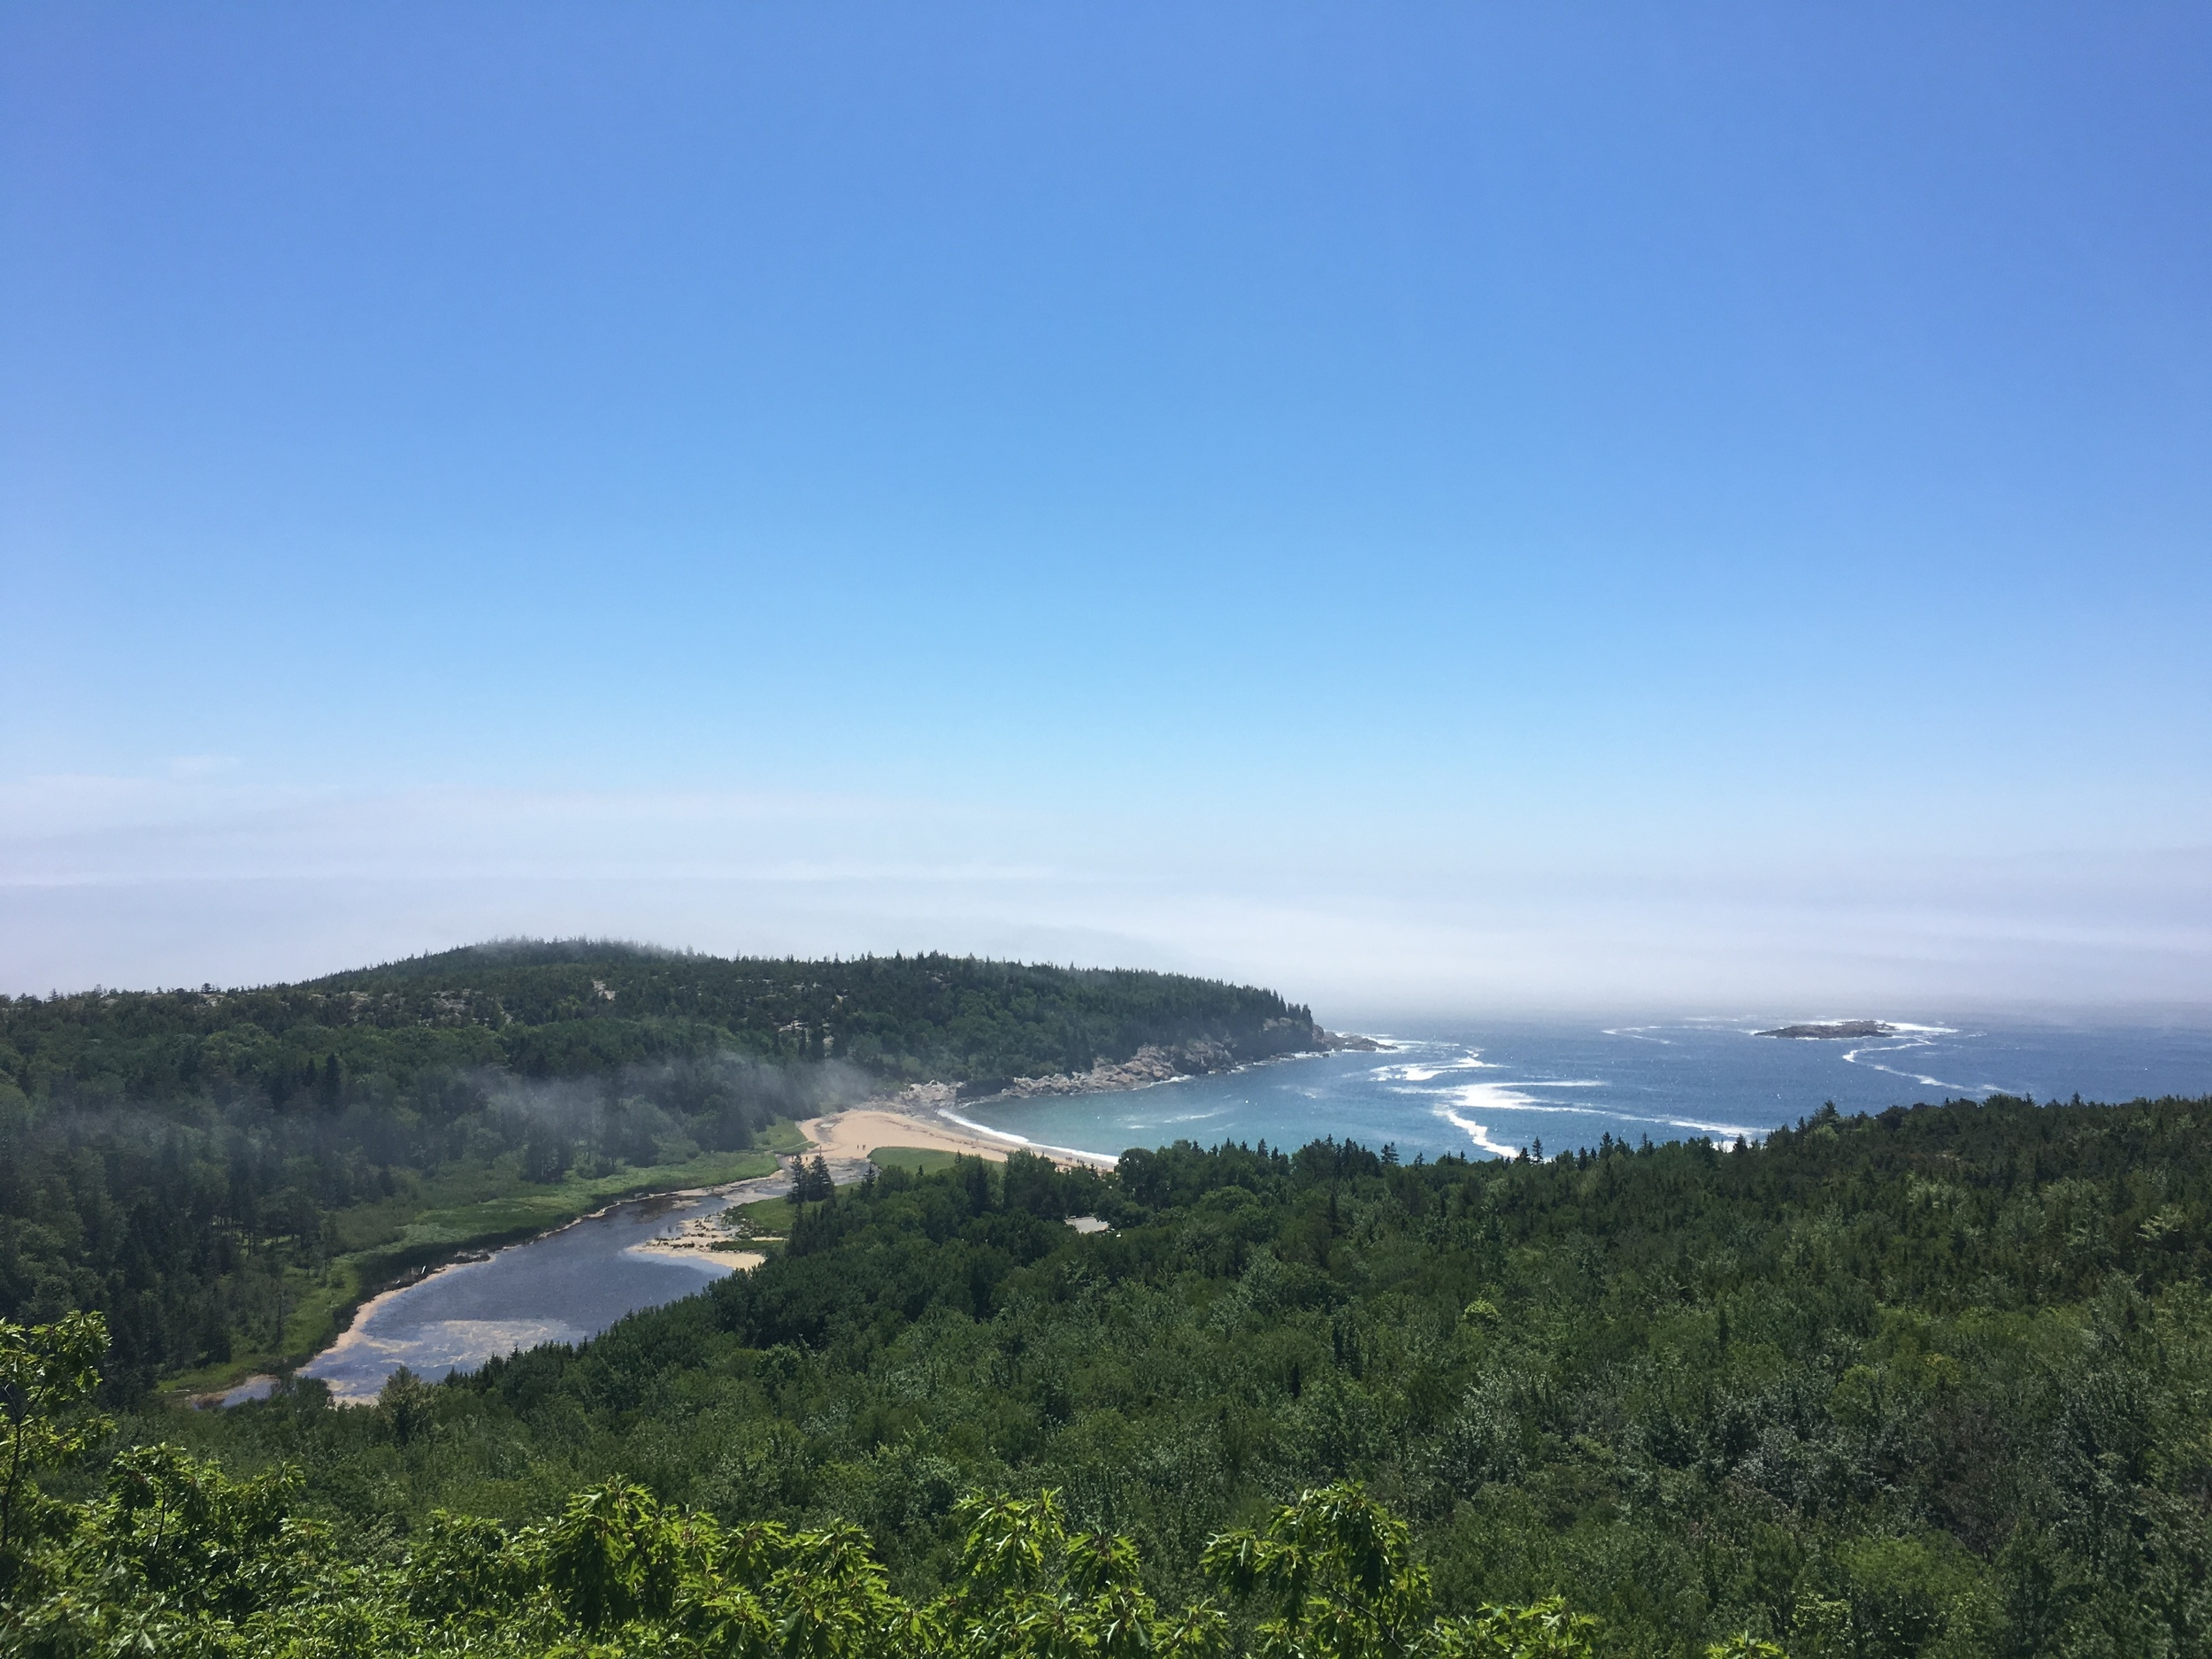 The views from the Beehive trail at Acadia National Park.